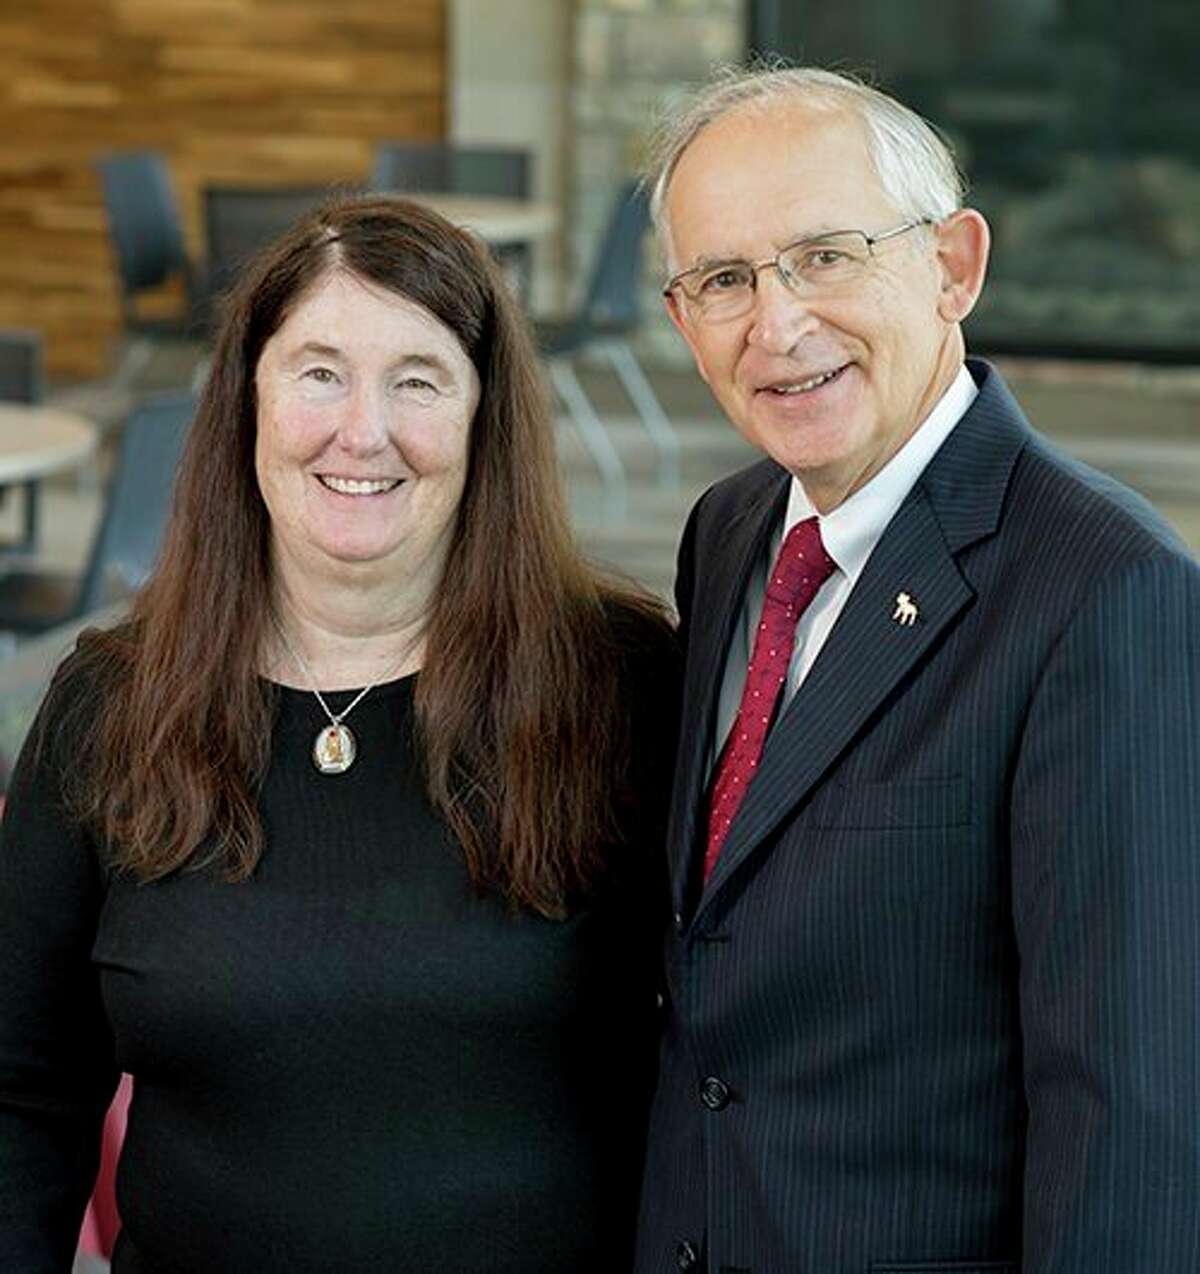 """Ferris State University President David Eisler and his wife, Patsy are grand marshals for the 95th Homecoming celebration, with the schedule of activities under the theme """"Bulldogs Back to Campus"""" concluding Saturday, Sept. 25. (Courtesy photo)"""